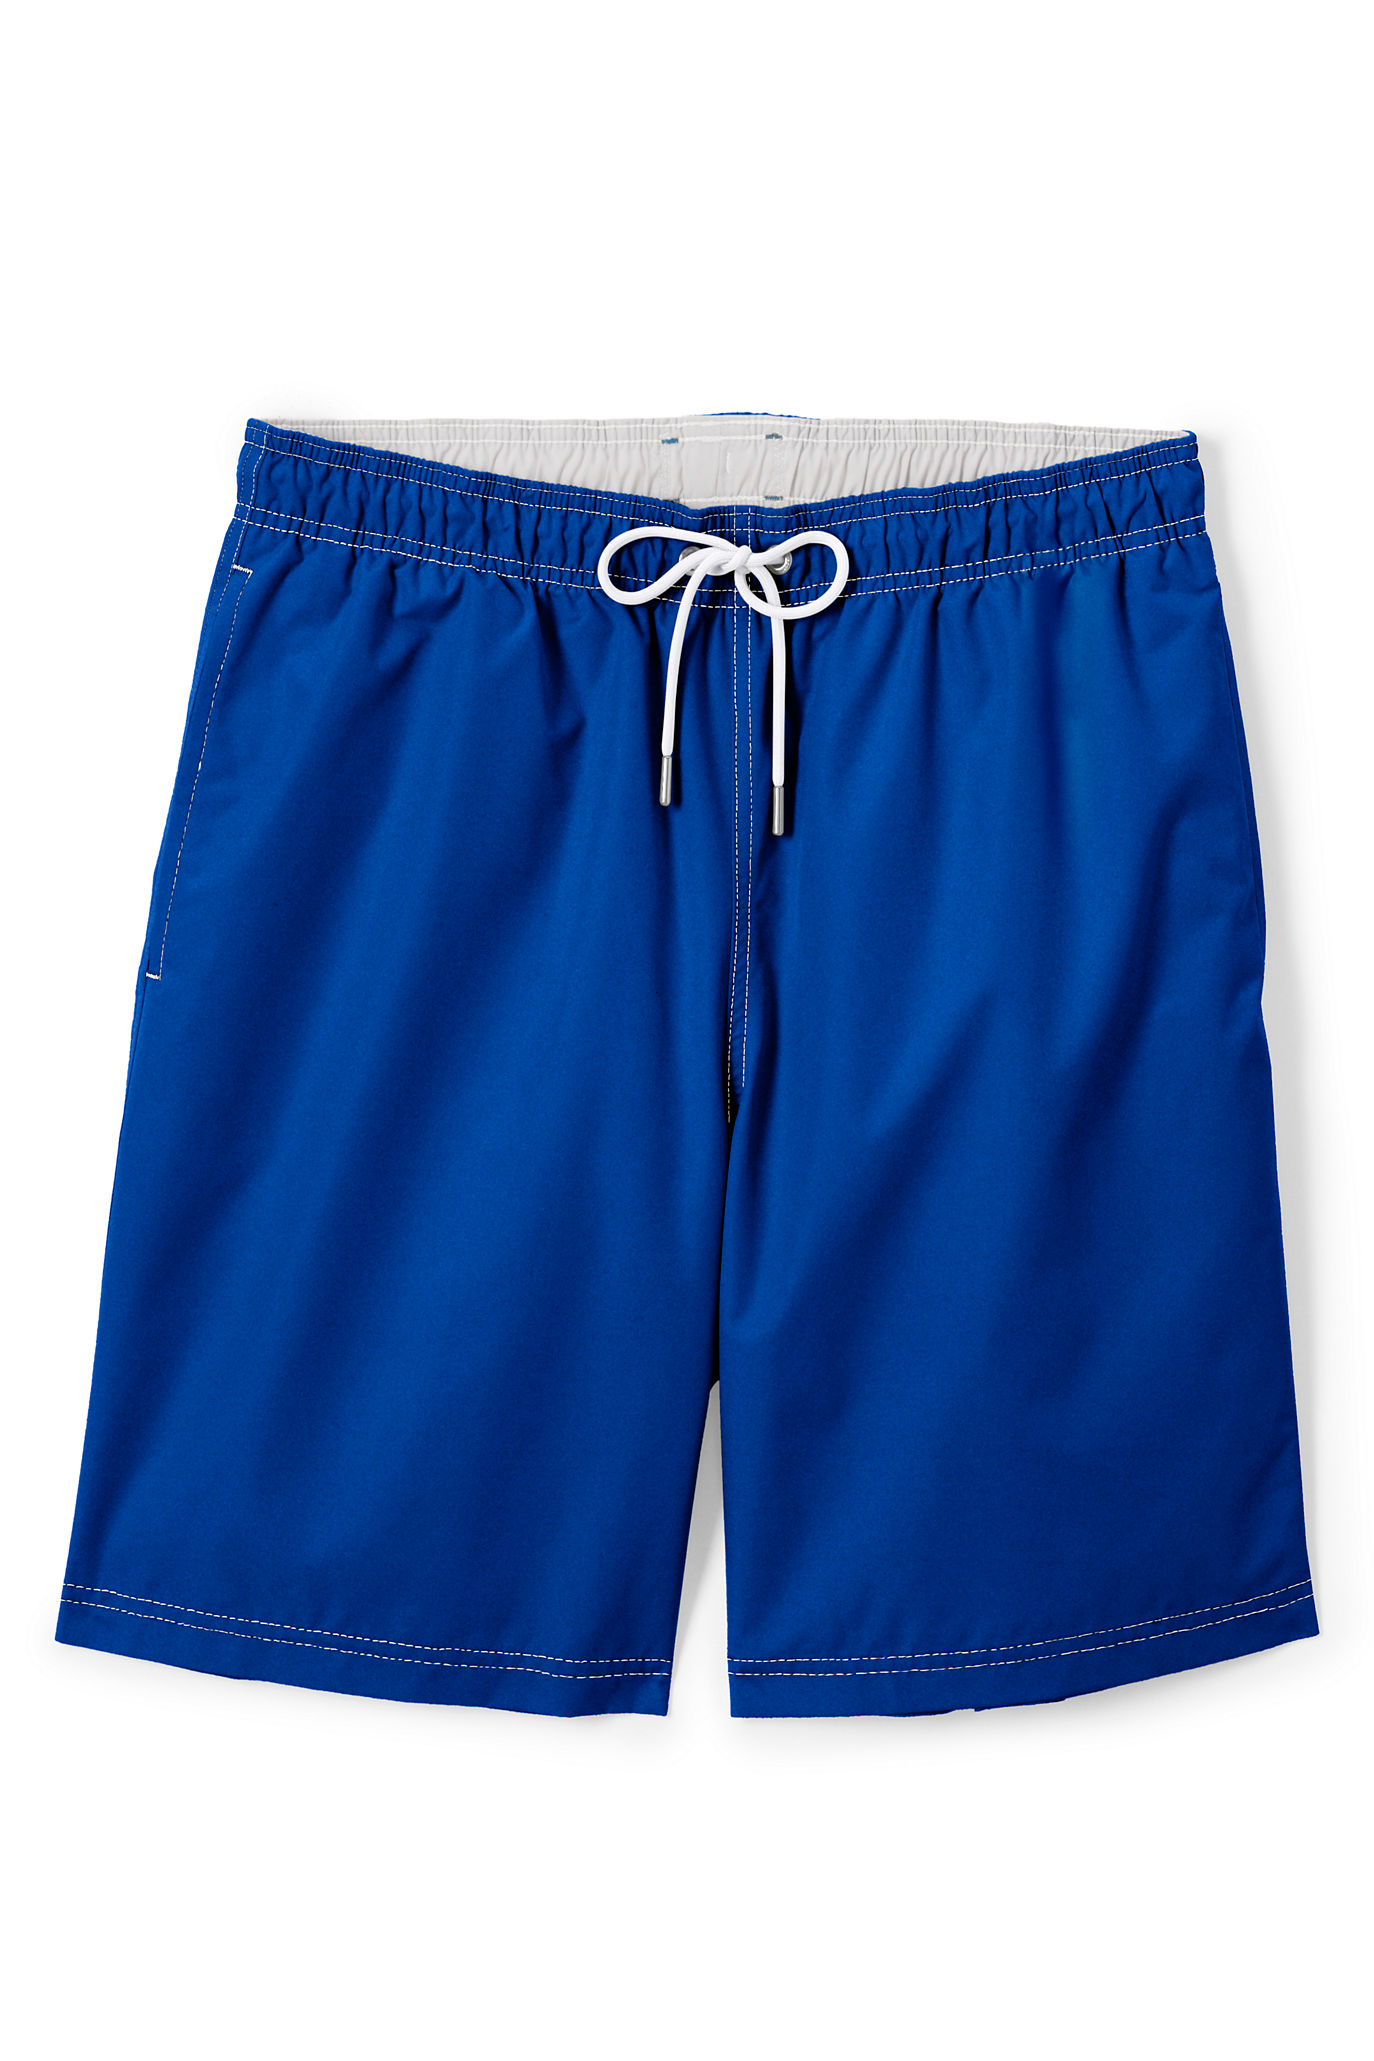 "Men's 9.5"" Outrigger Quick Dry Cargo Swim Trunks"